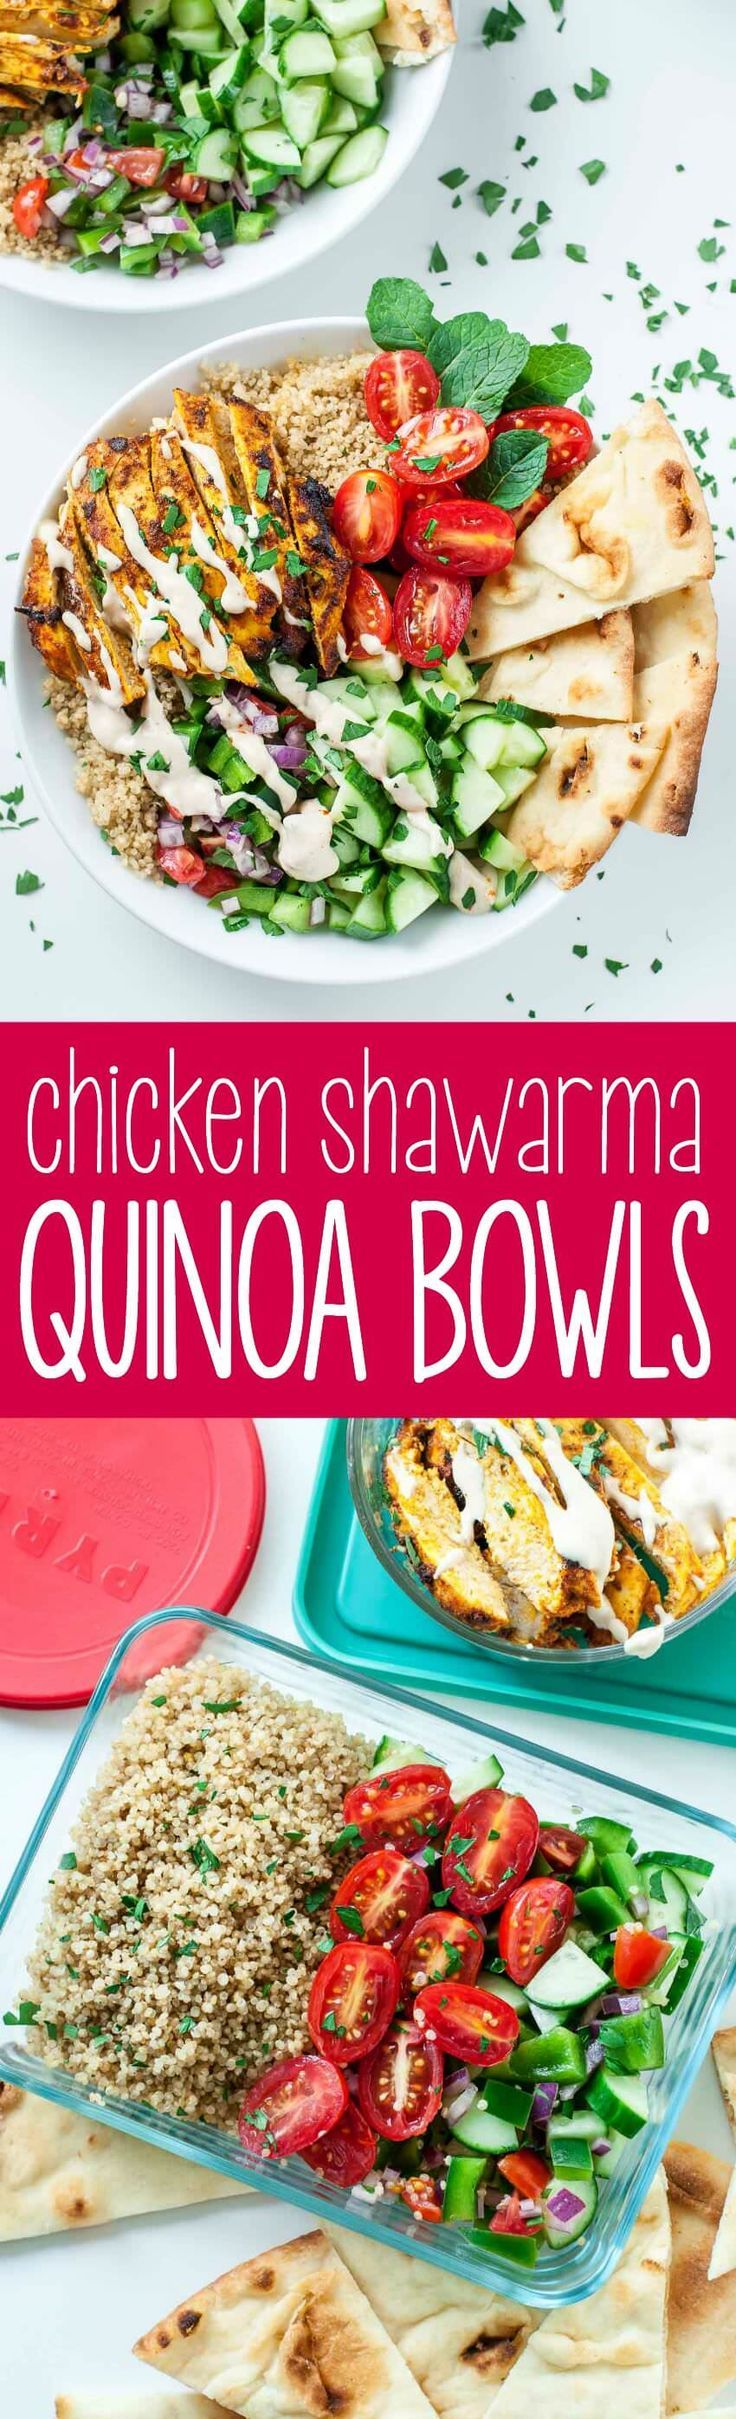 We're loving this recipe for healthy Chicken Shawarma Quinoa Bowls with a super easy hack for creating make-ahead lunches for work or school. The flavors are out of this world!! Vegetarian + Vegan ver